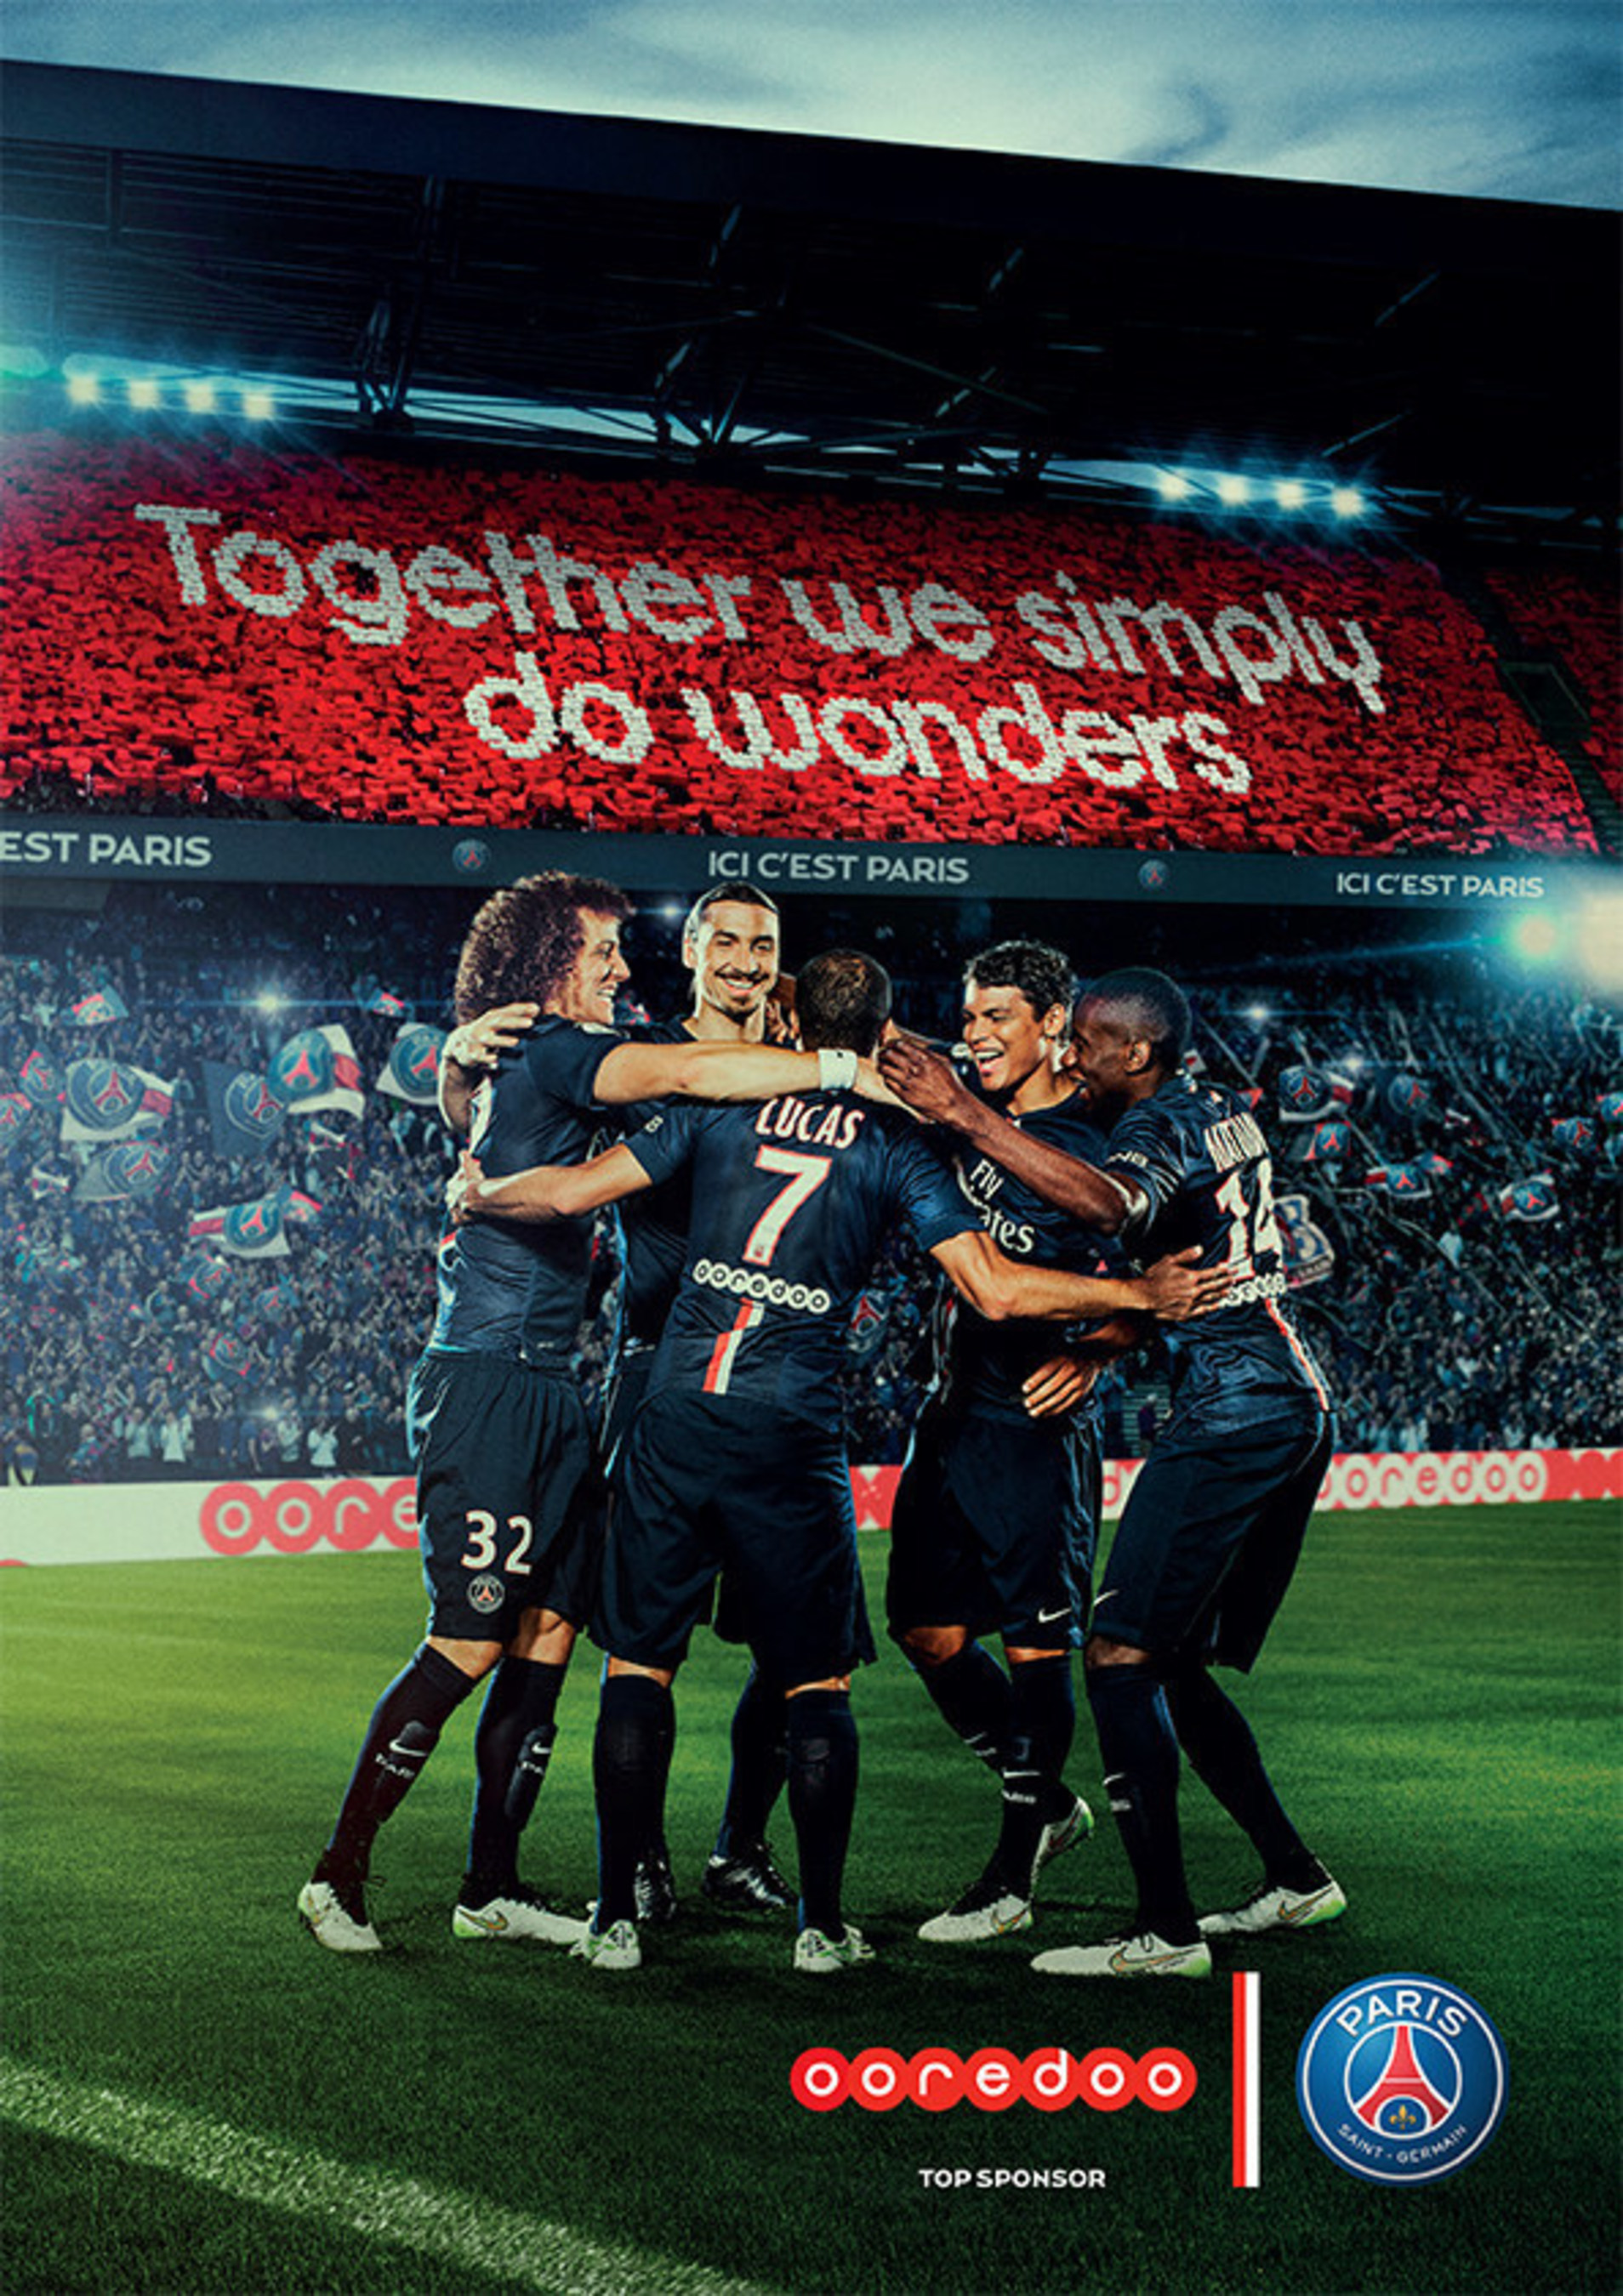 Ooredoo Launches 'Fans Do Wonders' Global Campaign with Paris Saint-Germain